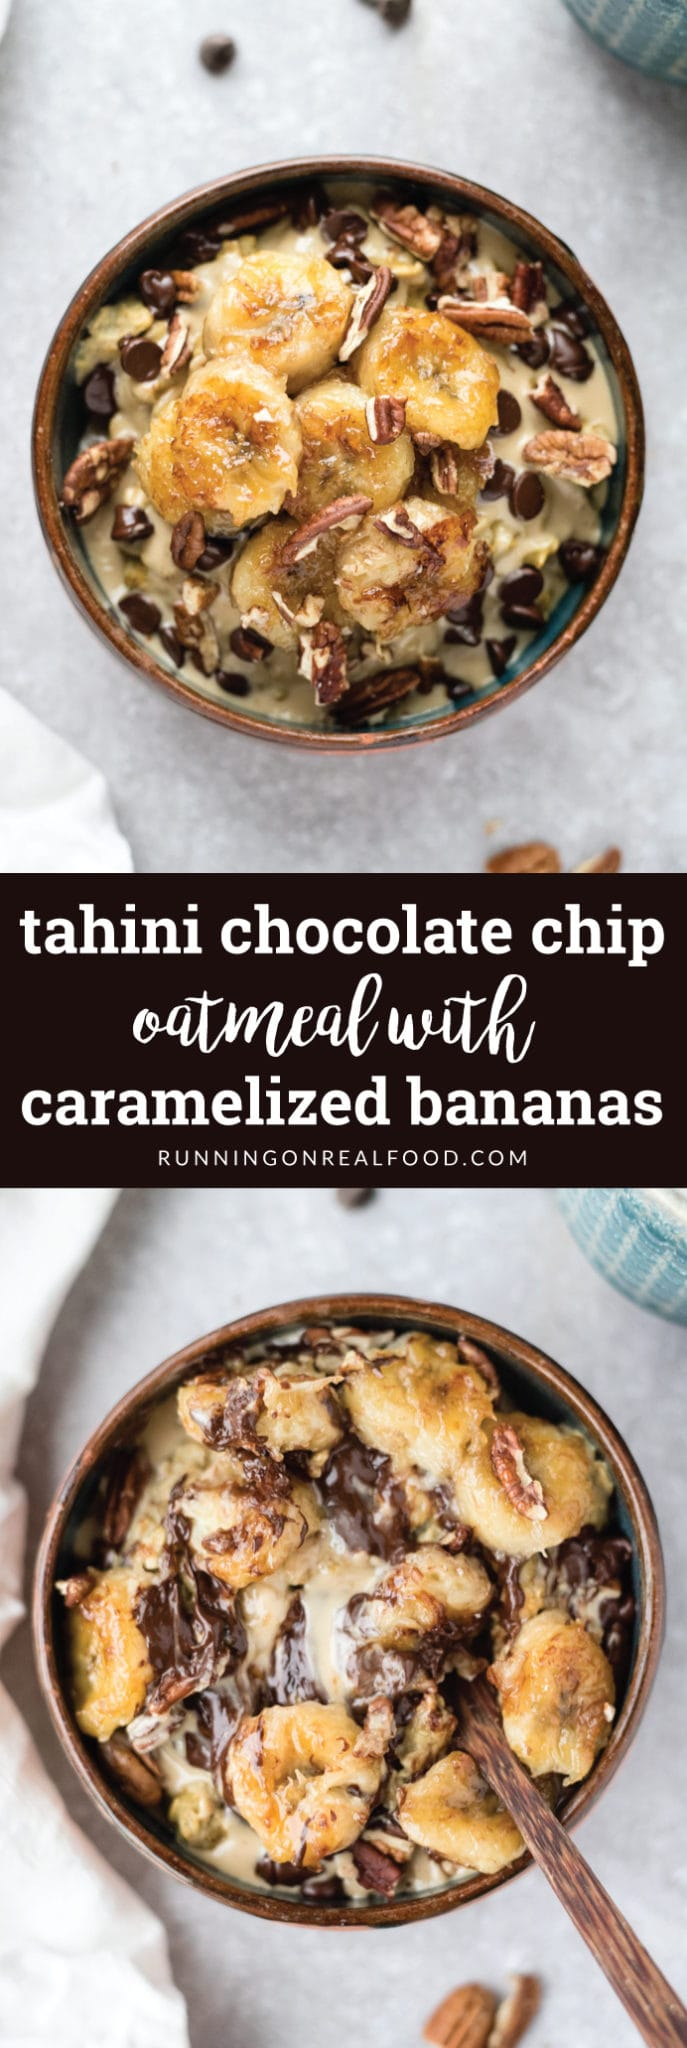 This Tahini Chocolate Chip Oatmeal with Caramelized Bananas is a special treat. Enjoy it on a rainy Sunday or cozy Christmas morning. Vegan and Naturally Gluten-free.